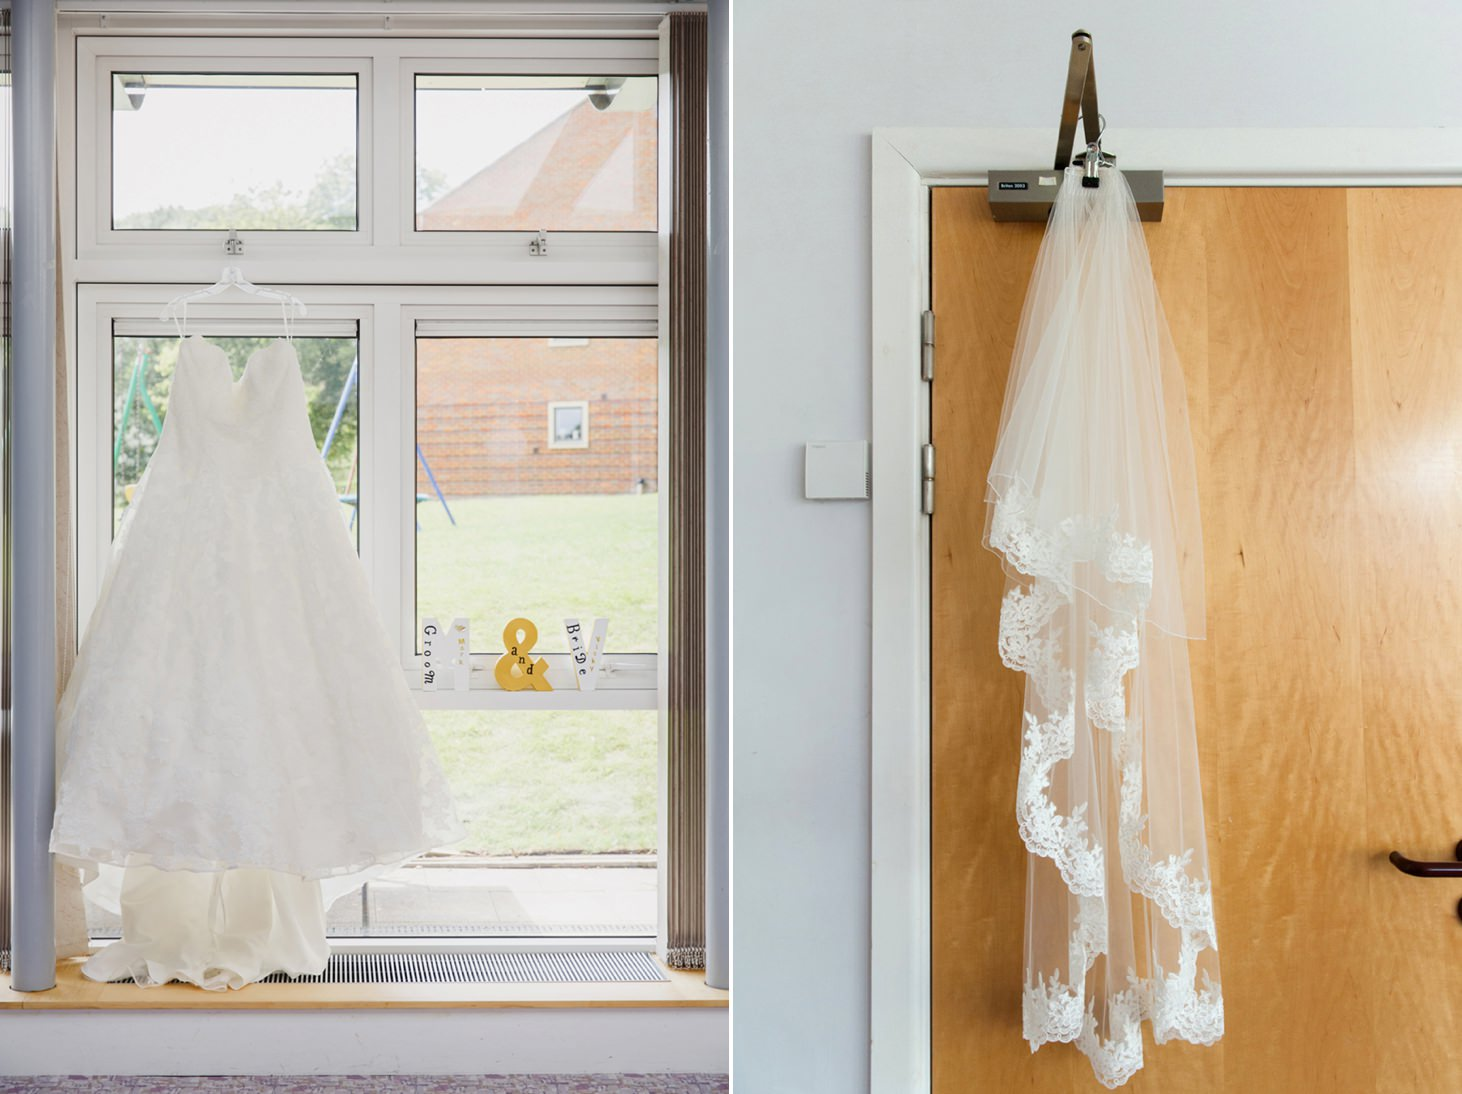 Wycombe Abbey wedding photography bride's dress and veil